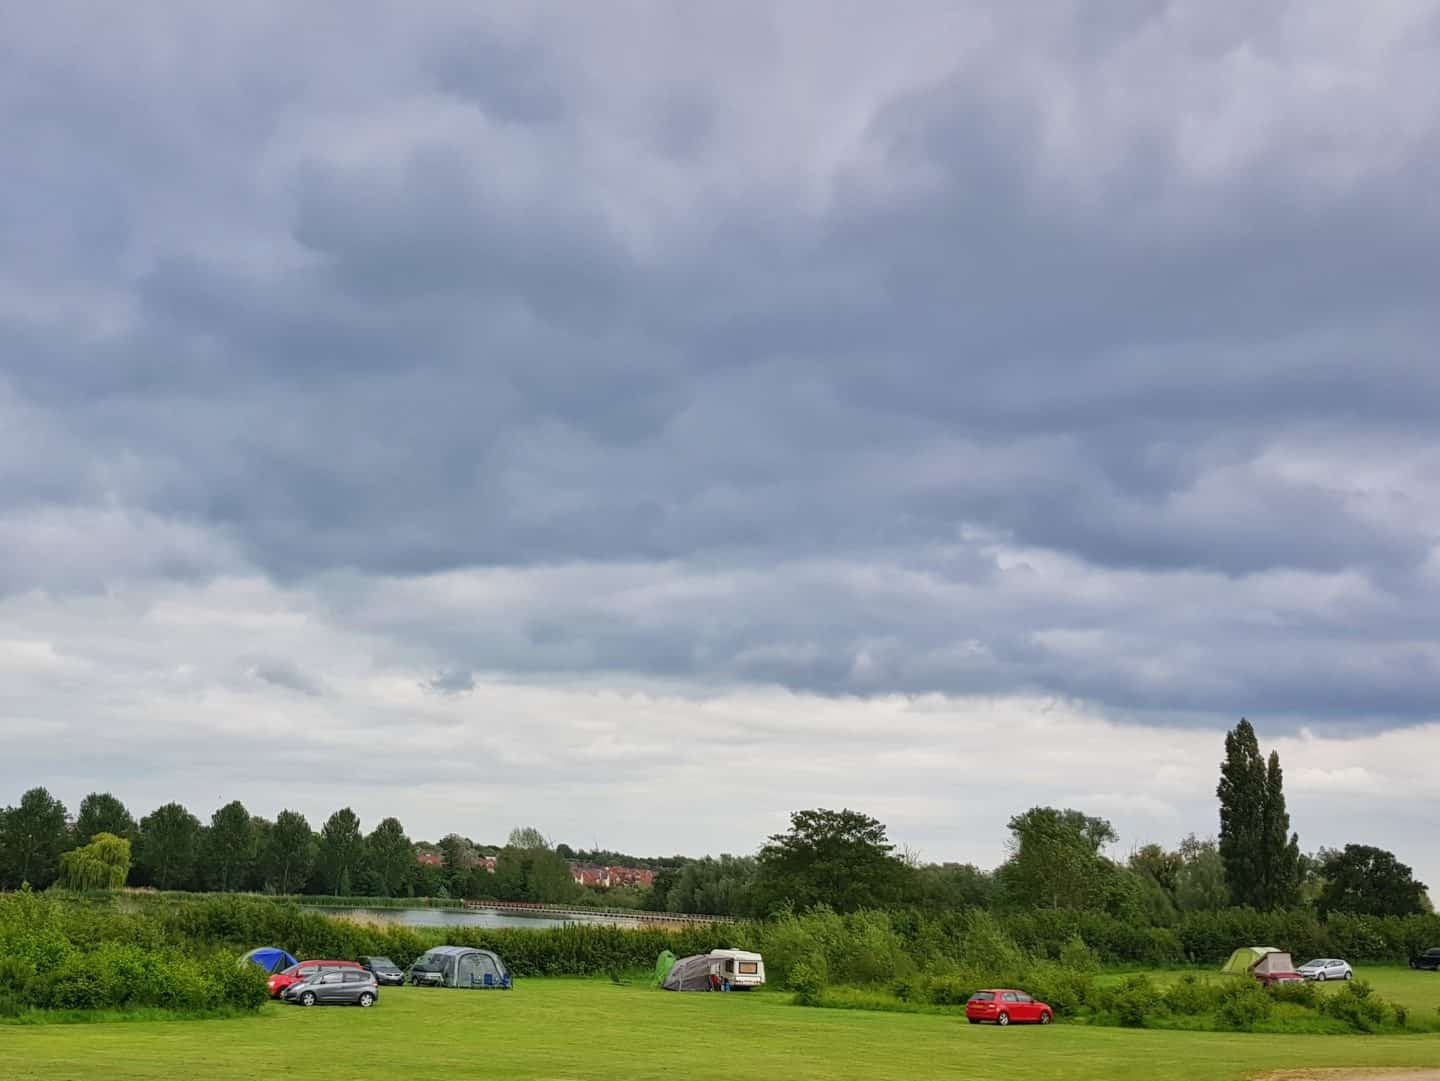 campsite at Wicksteed Park